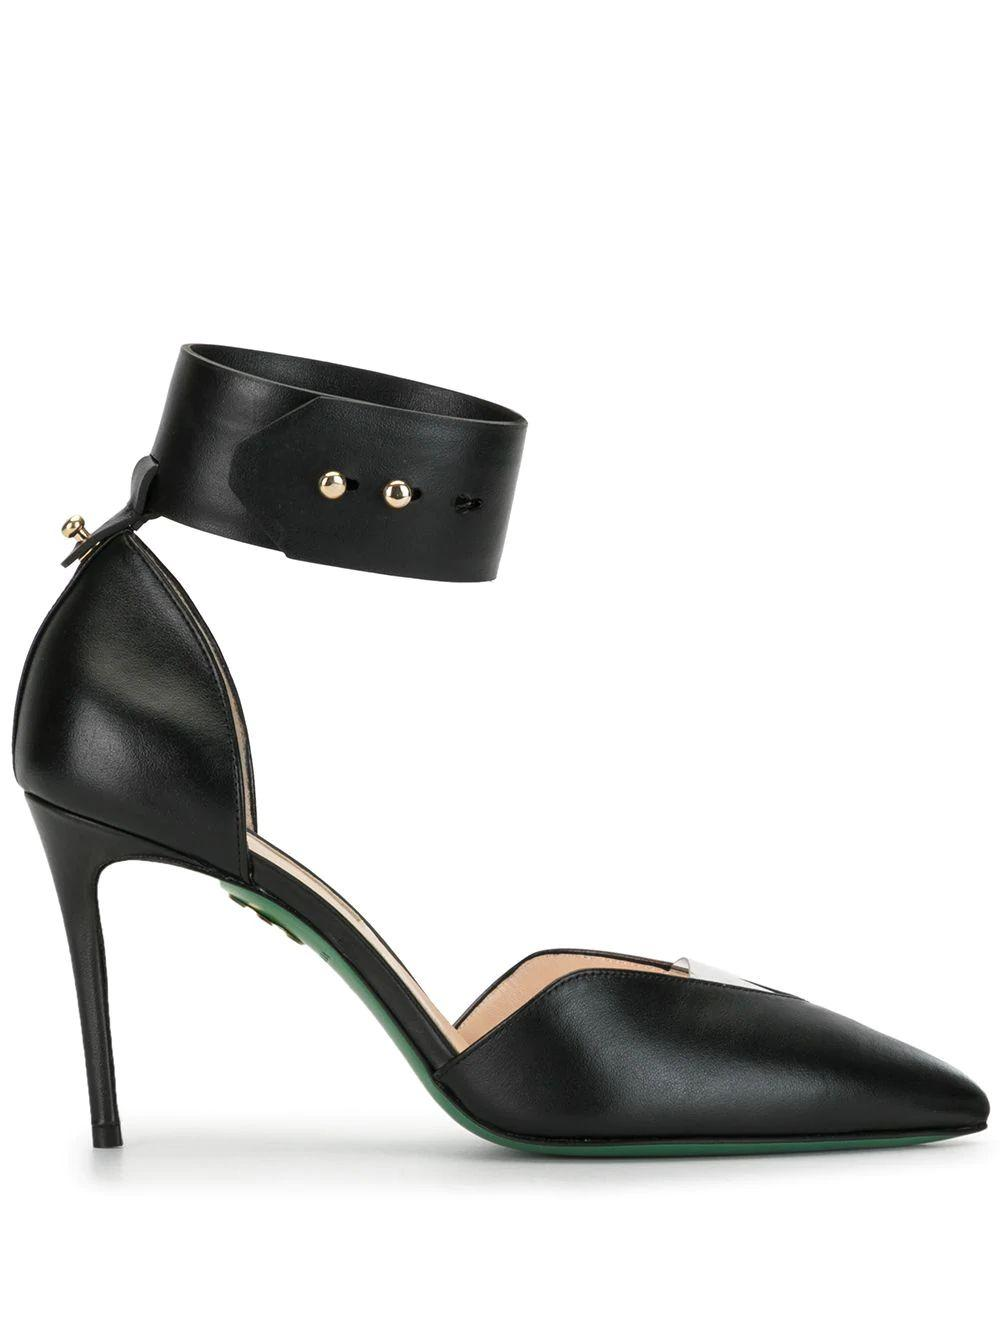 Sara 90mm Pump With Ankle Cuff